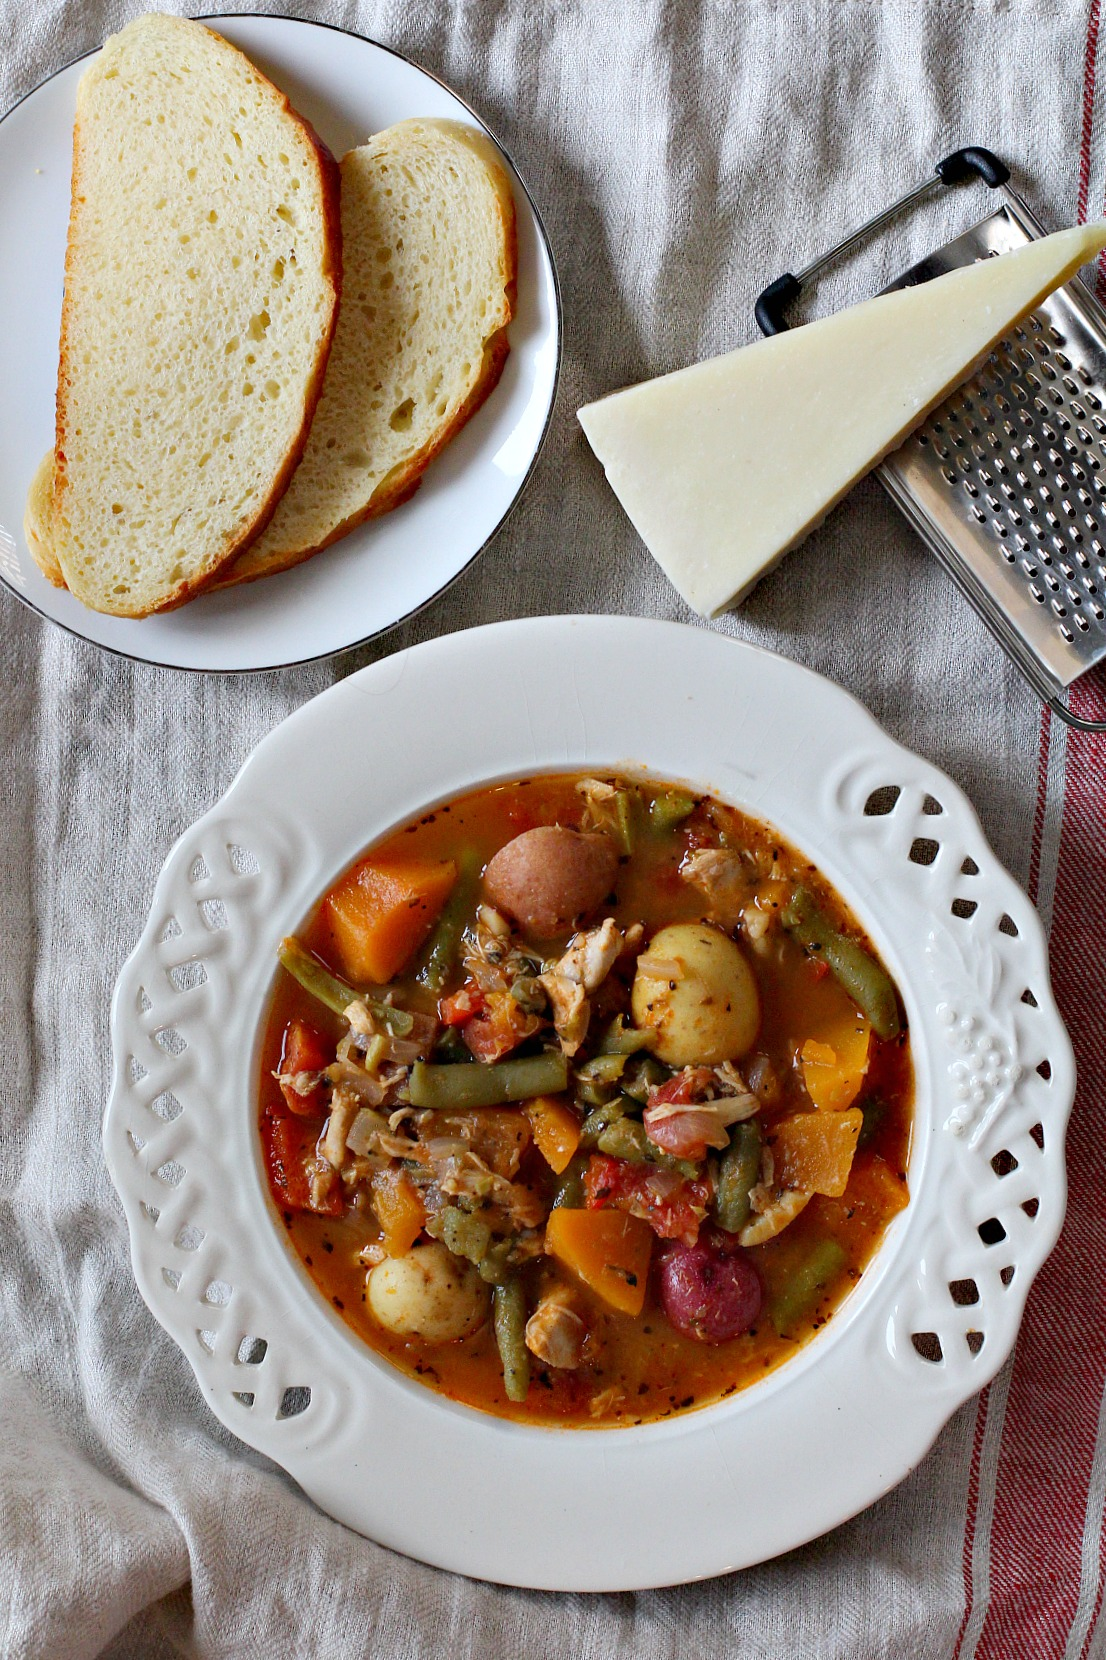 Chicken potato soup with vegetables with parmesan cheese and bread